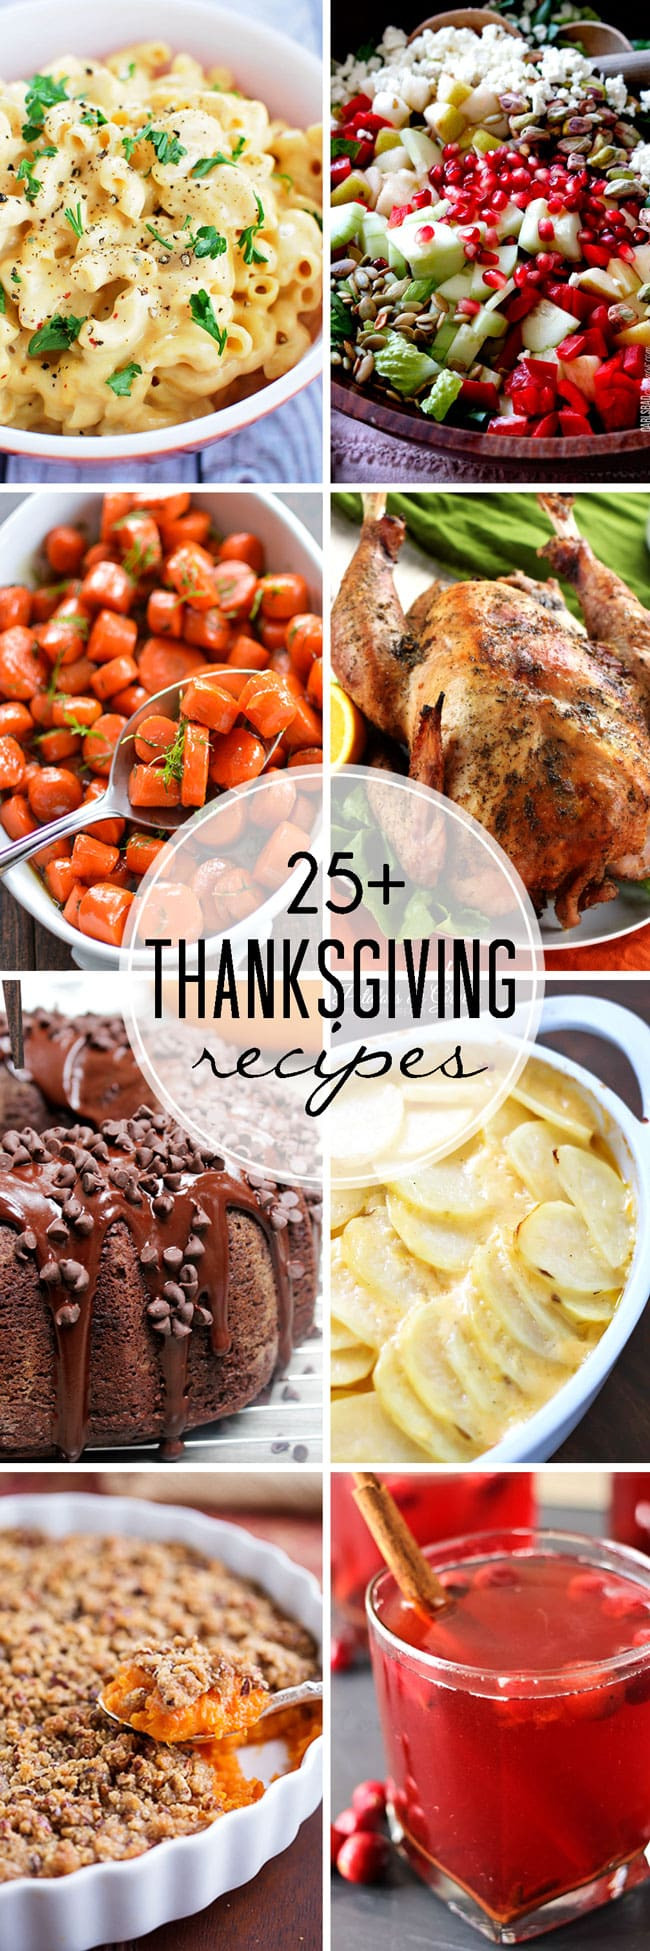 Turkey Recipe Thanksgiving  25 Plus Fabulous Thanksgiving Recipes